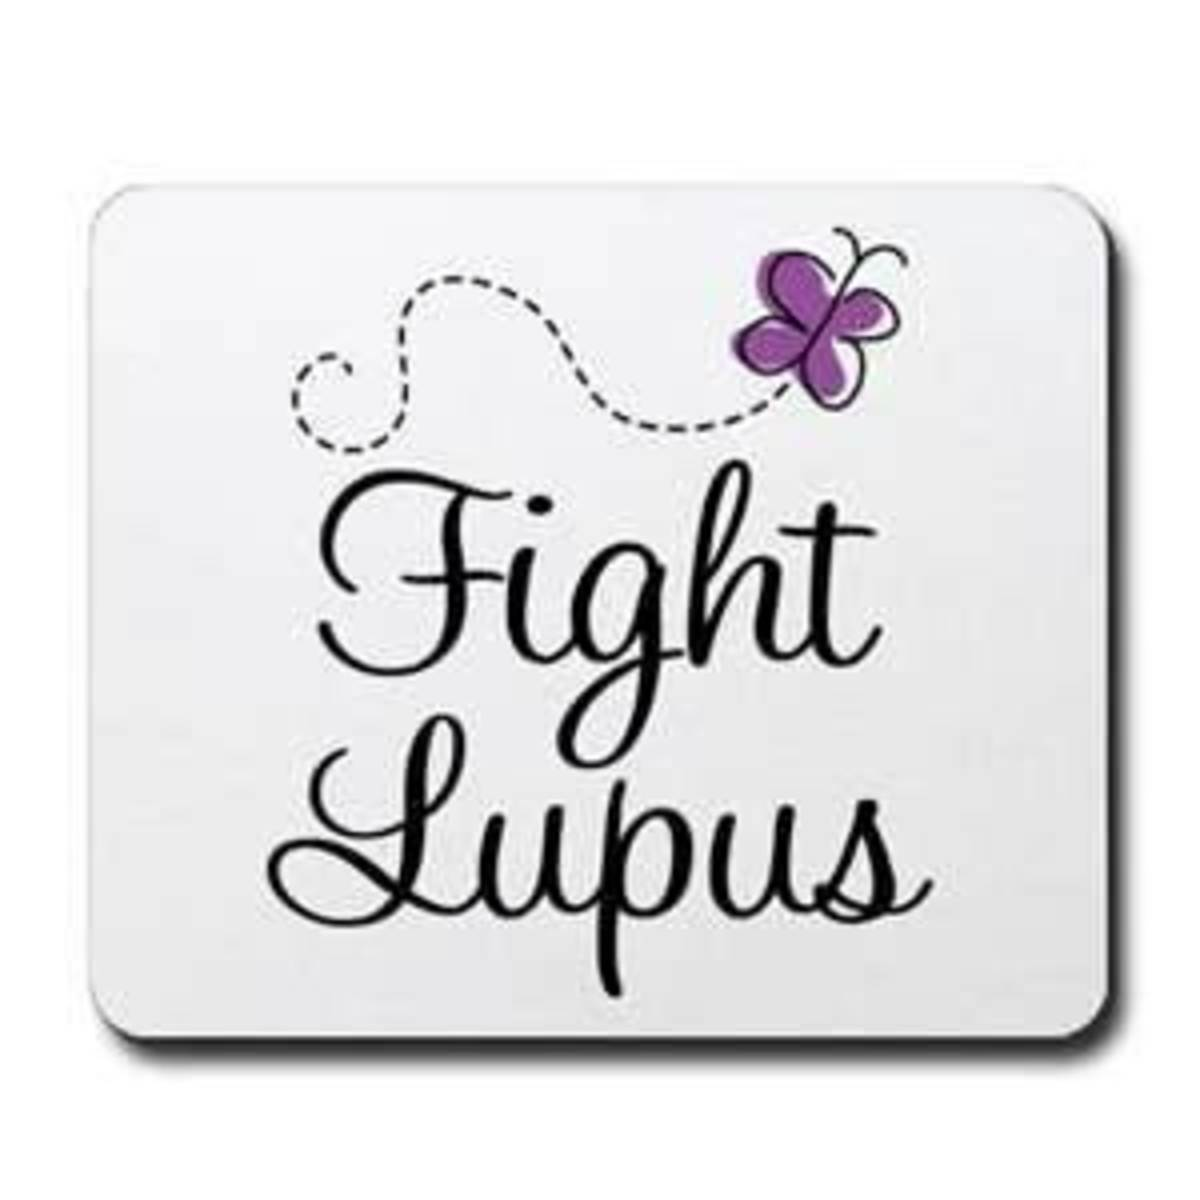 Lupus disease - How to deal with this auto immune disease using essential oils, vitamins and herbs.